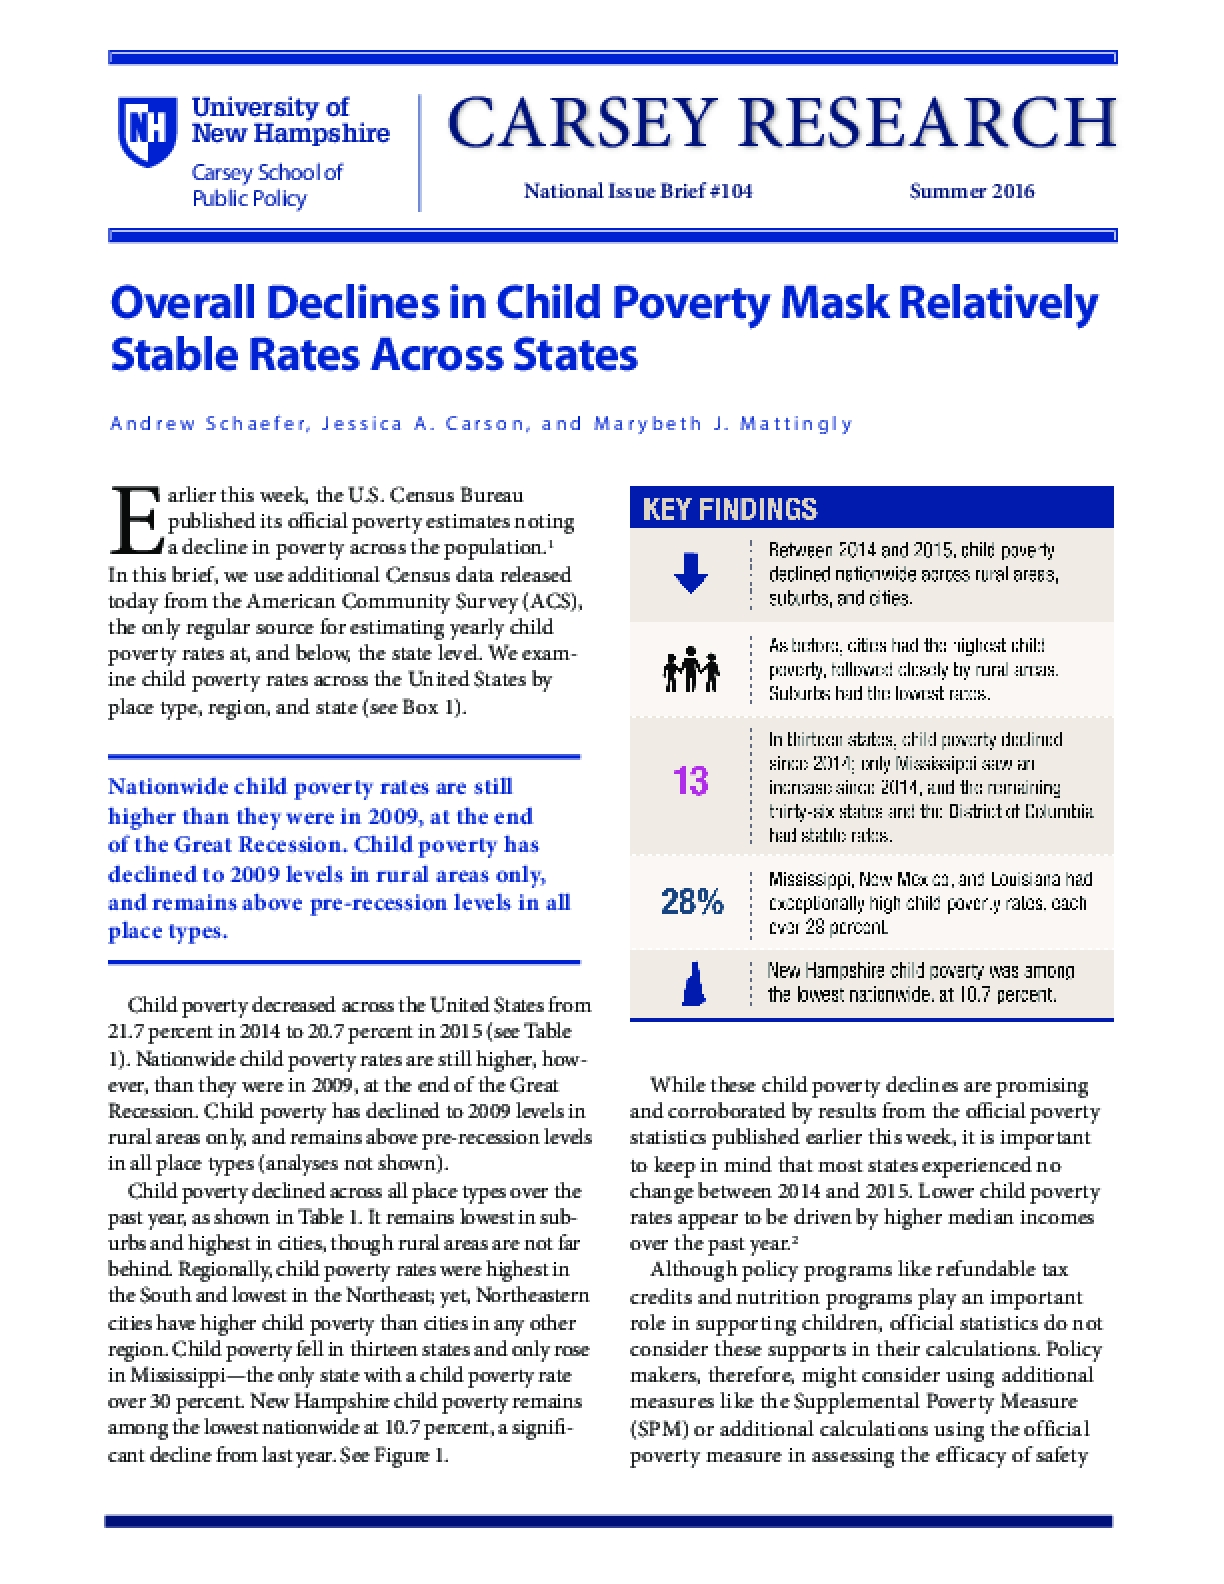 Overall Declines in Child Poverty Mask Relatively Stable Rates Across States